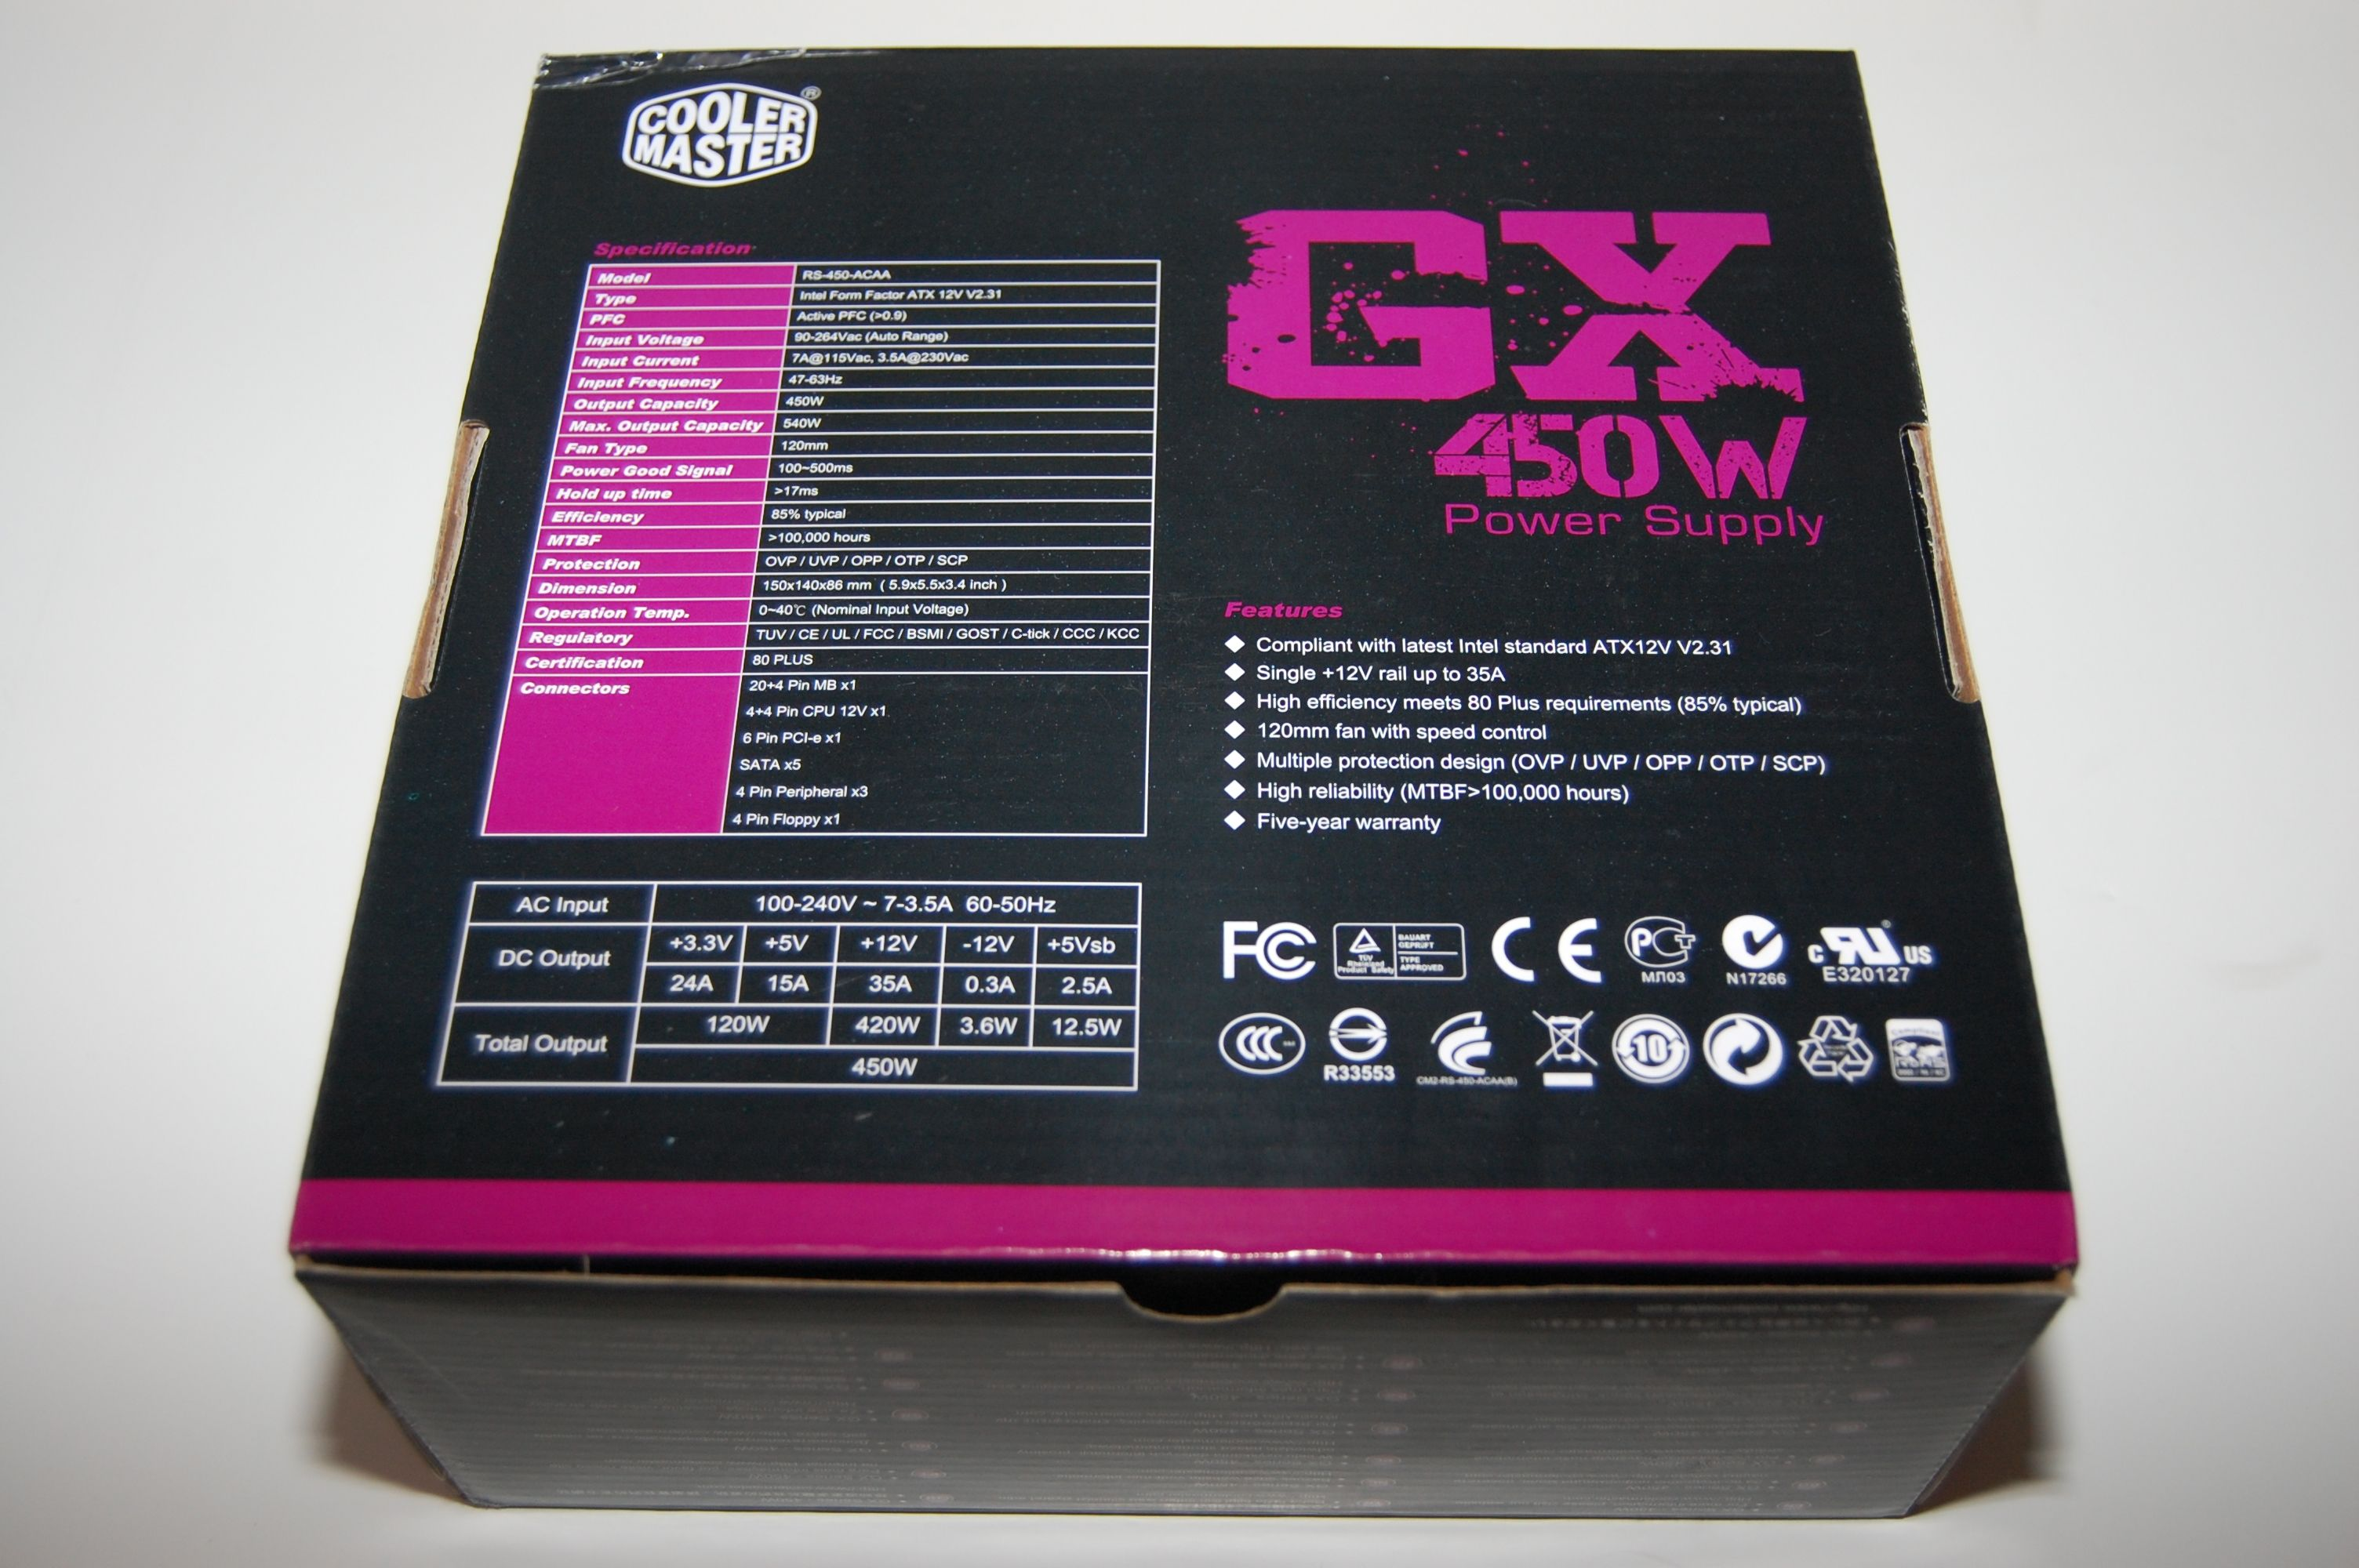 b_0_0_0_00_images_stories_CoolermasterGX450_DSC_0268.JPG